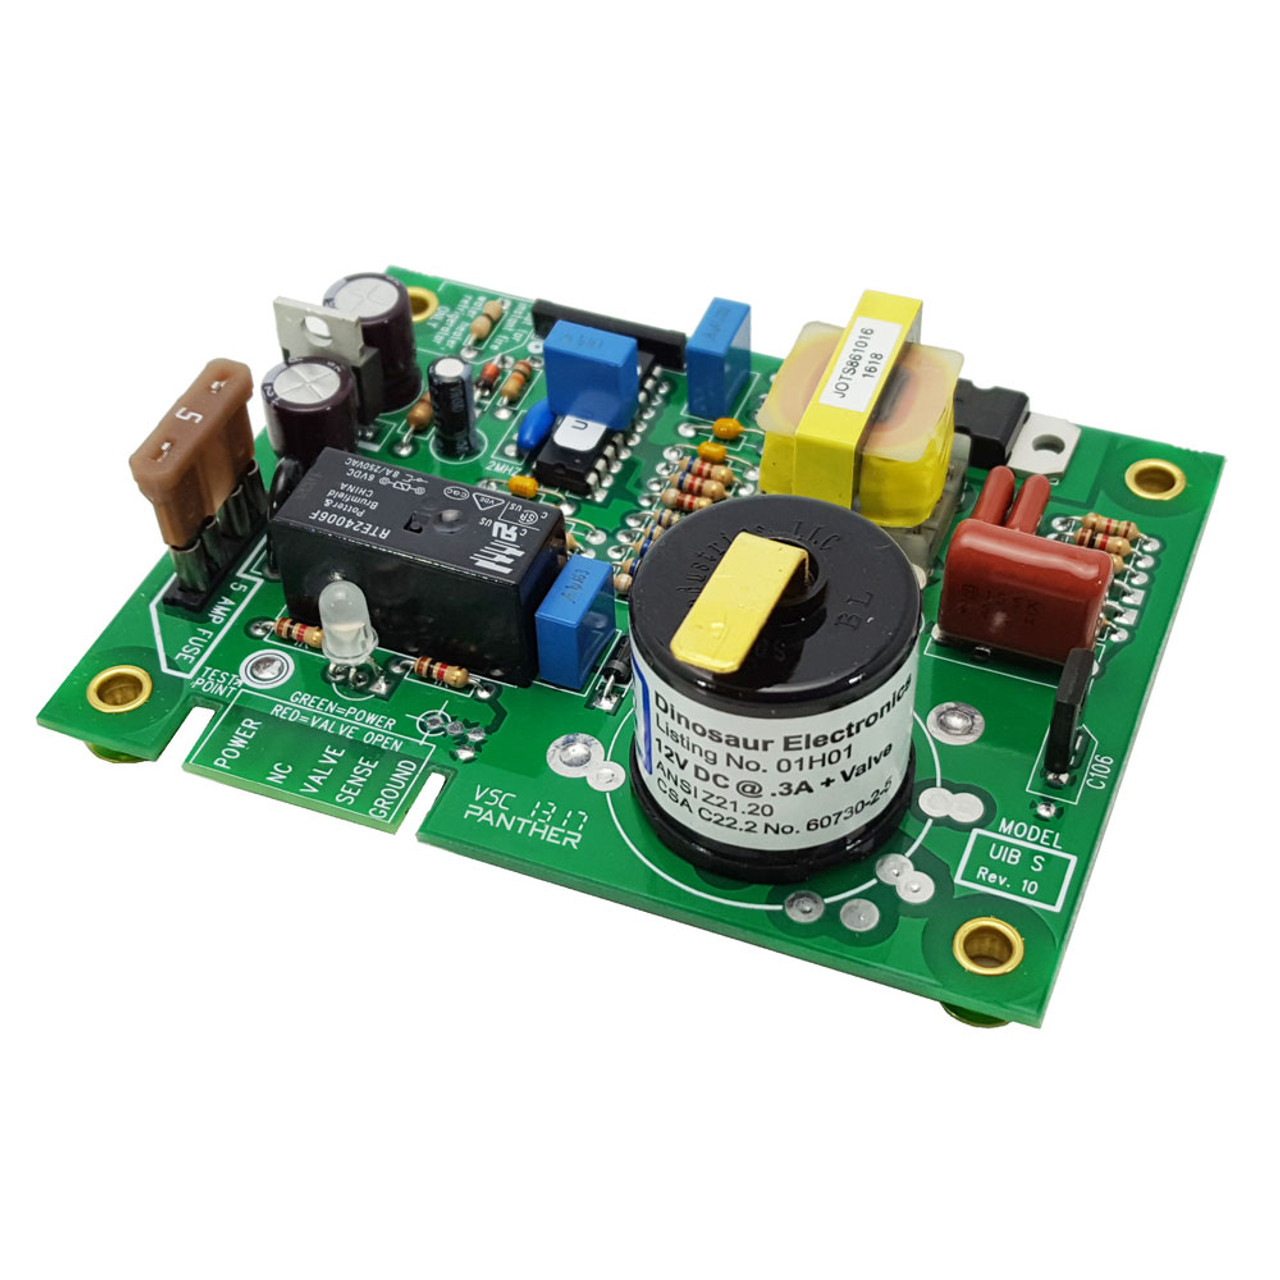 small resolution of dinosaur elect uib s universal ignitor control board small atwood 93865 circuit board wiring diagram